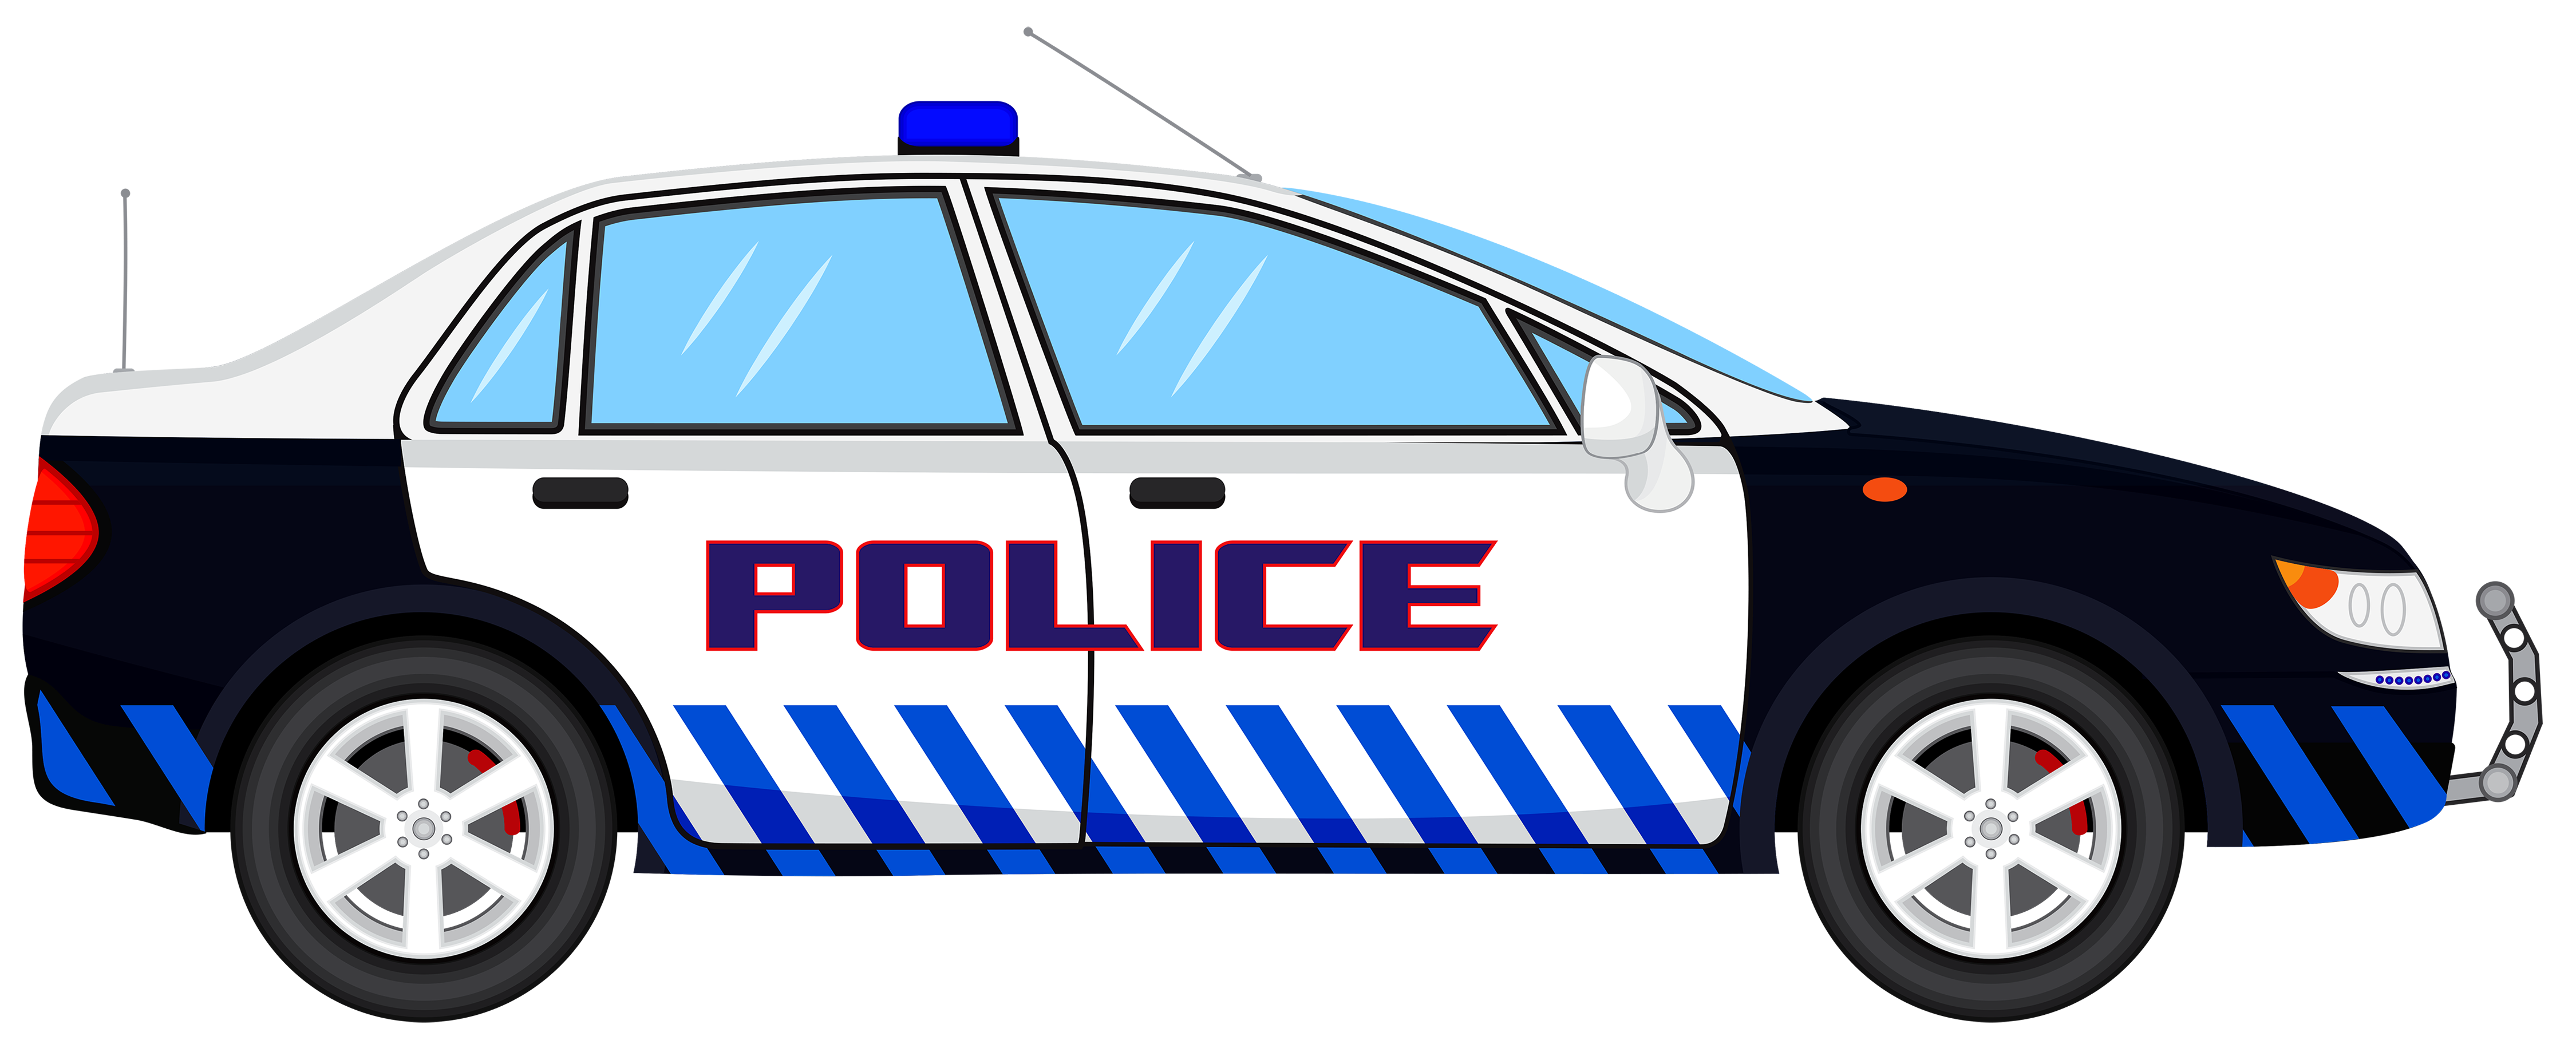 Police car transparent clip art image - Law Enforcement PNG HD